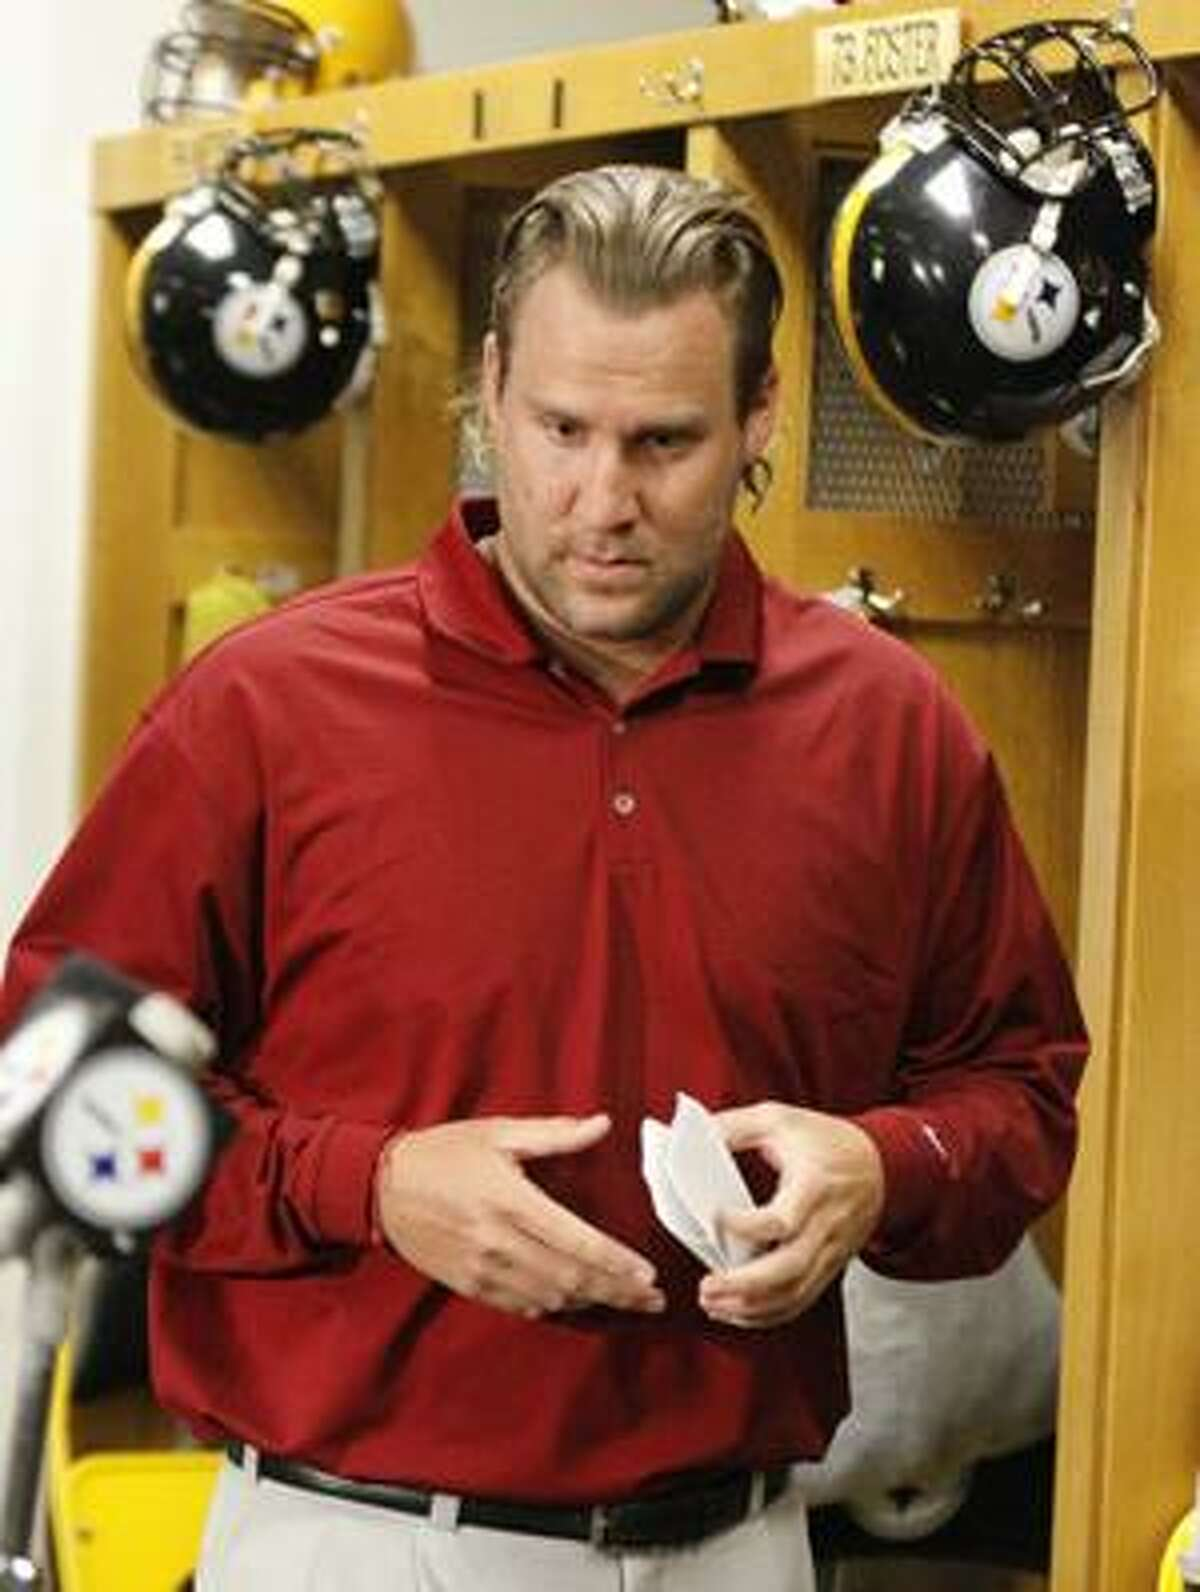 Pittsburgh Steelers quarterback Ben Roethlisberger prepares to read a statement in the NFL football team's locker room Monday, April 12, 2010, in Pittsburgh. Roethlisberger says he is